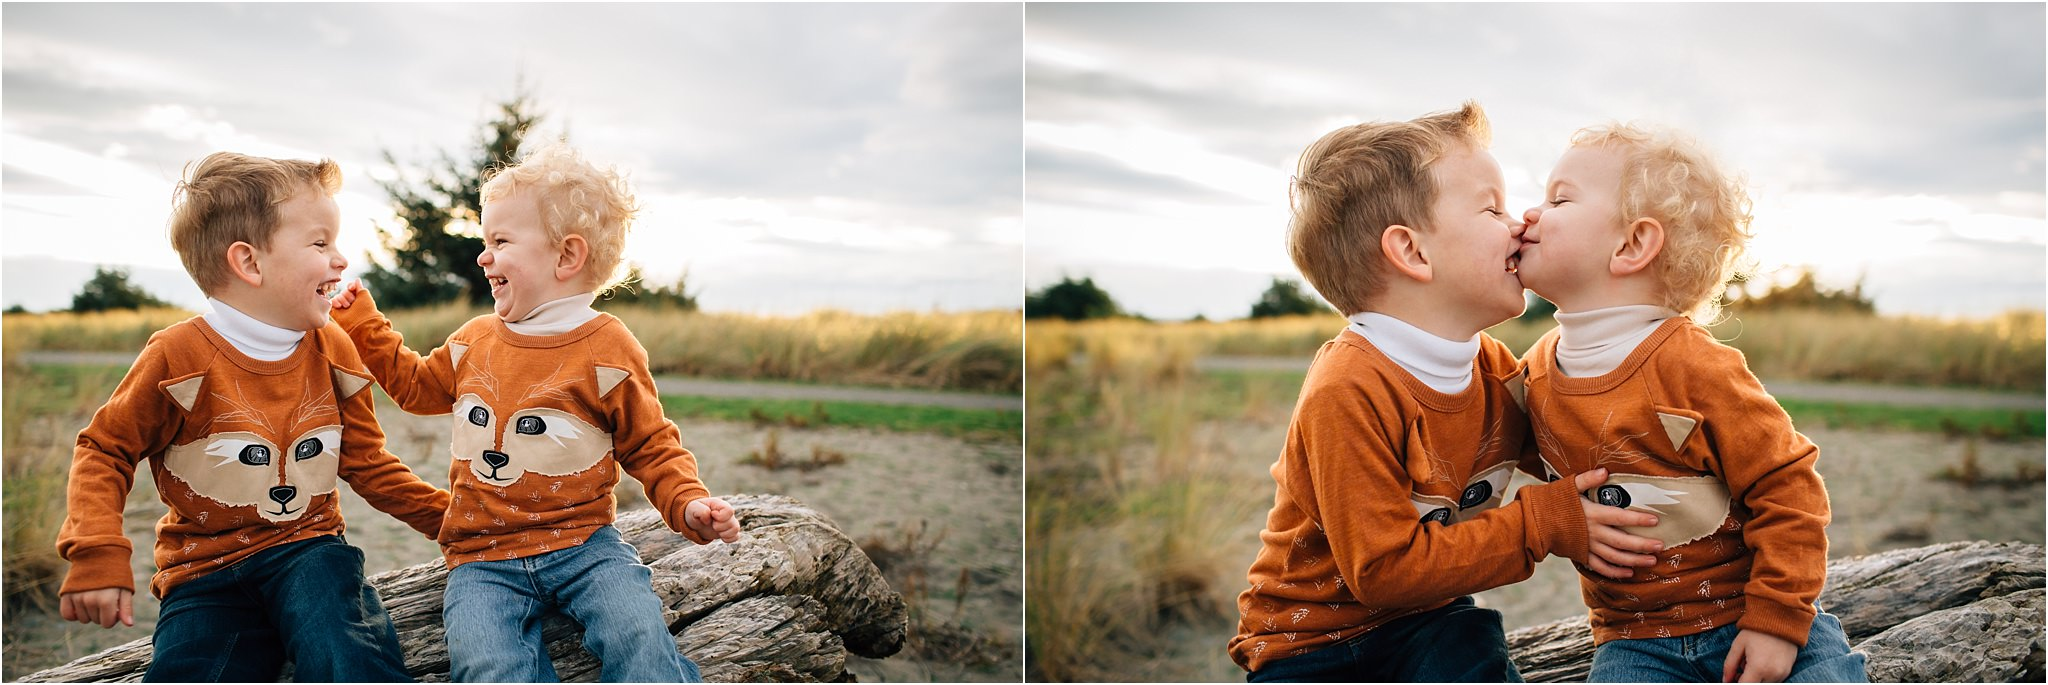 Whidbey-Island-Family-Photographer-Kara-Chappell-Photography_0034.jpg